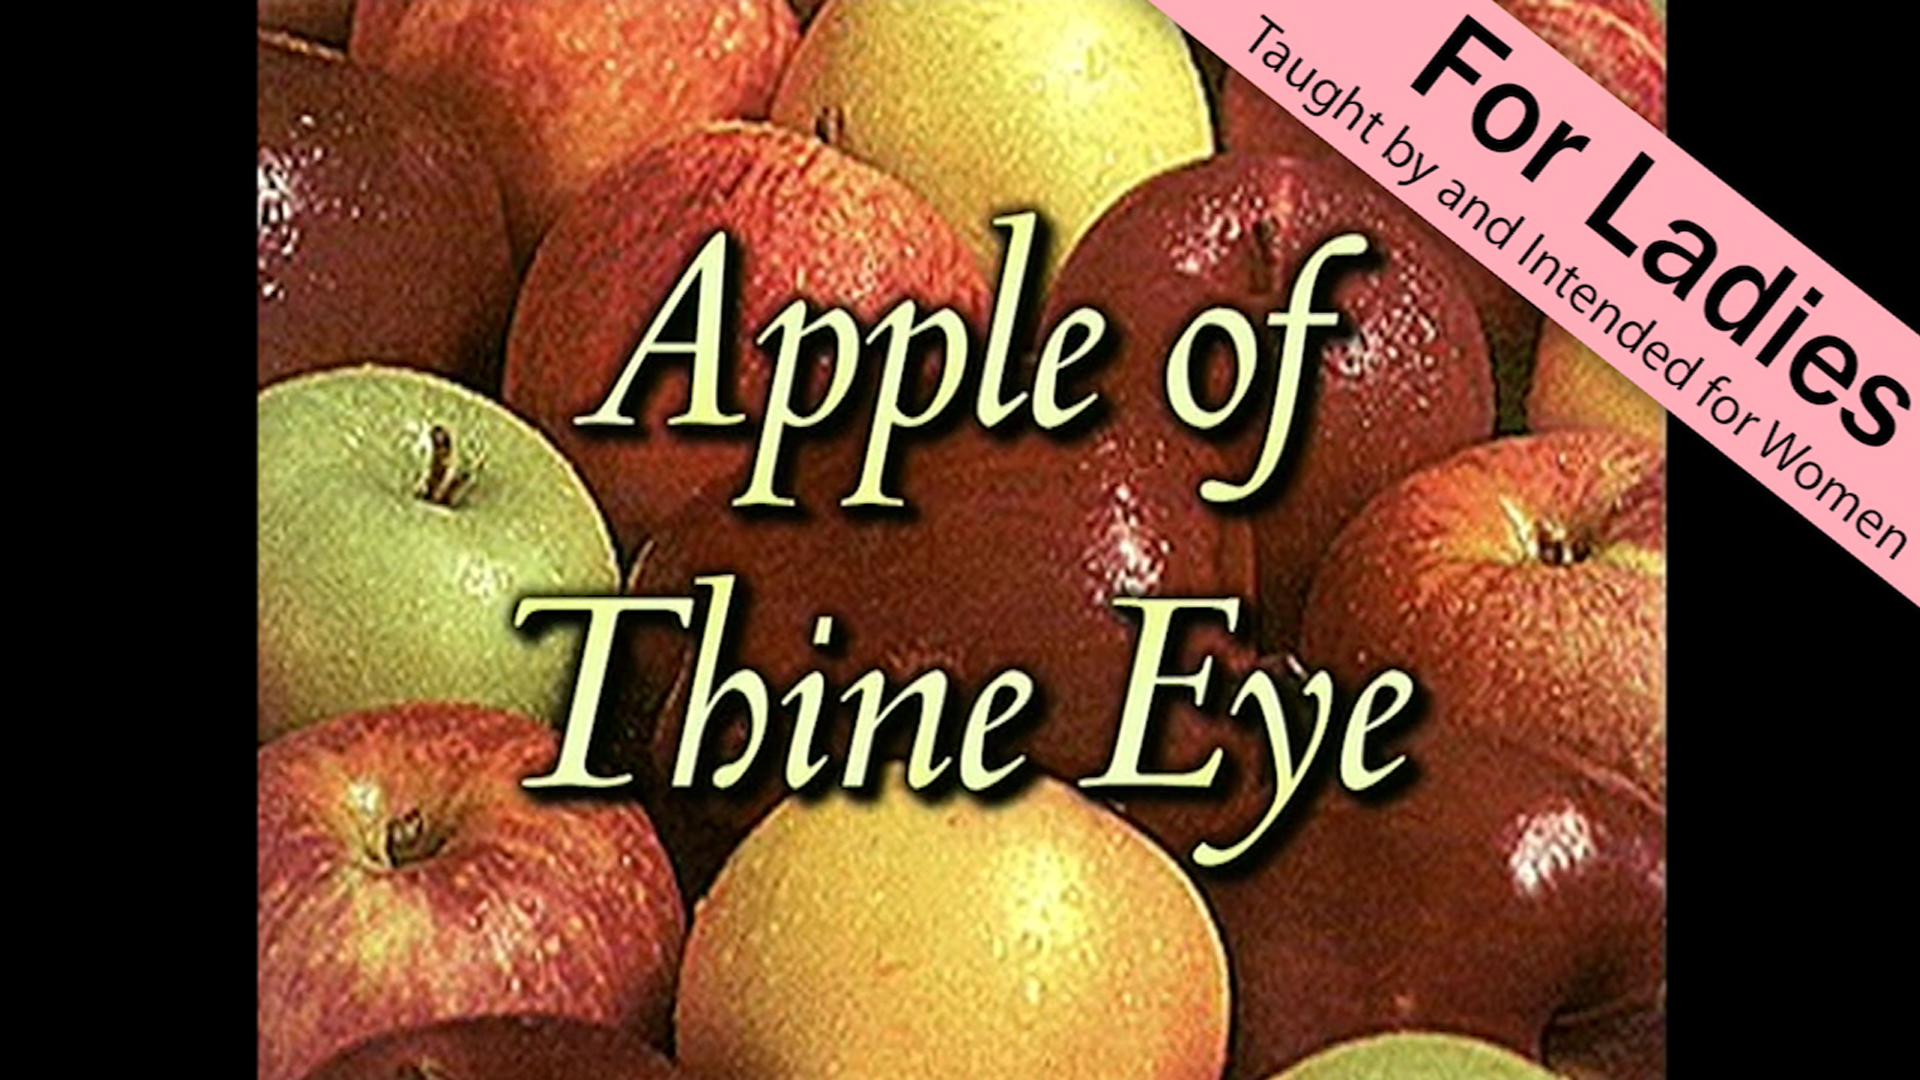 Apple of Thine Eye